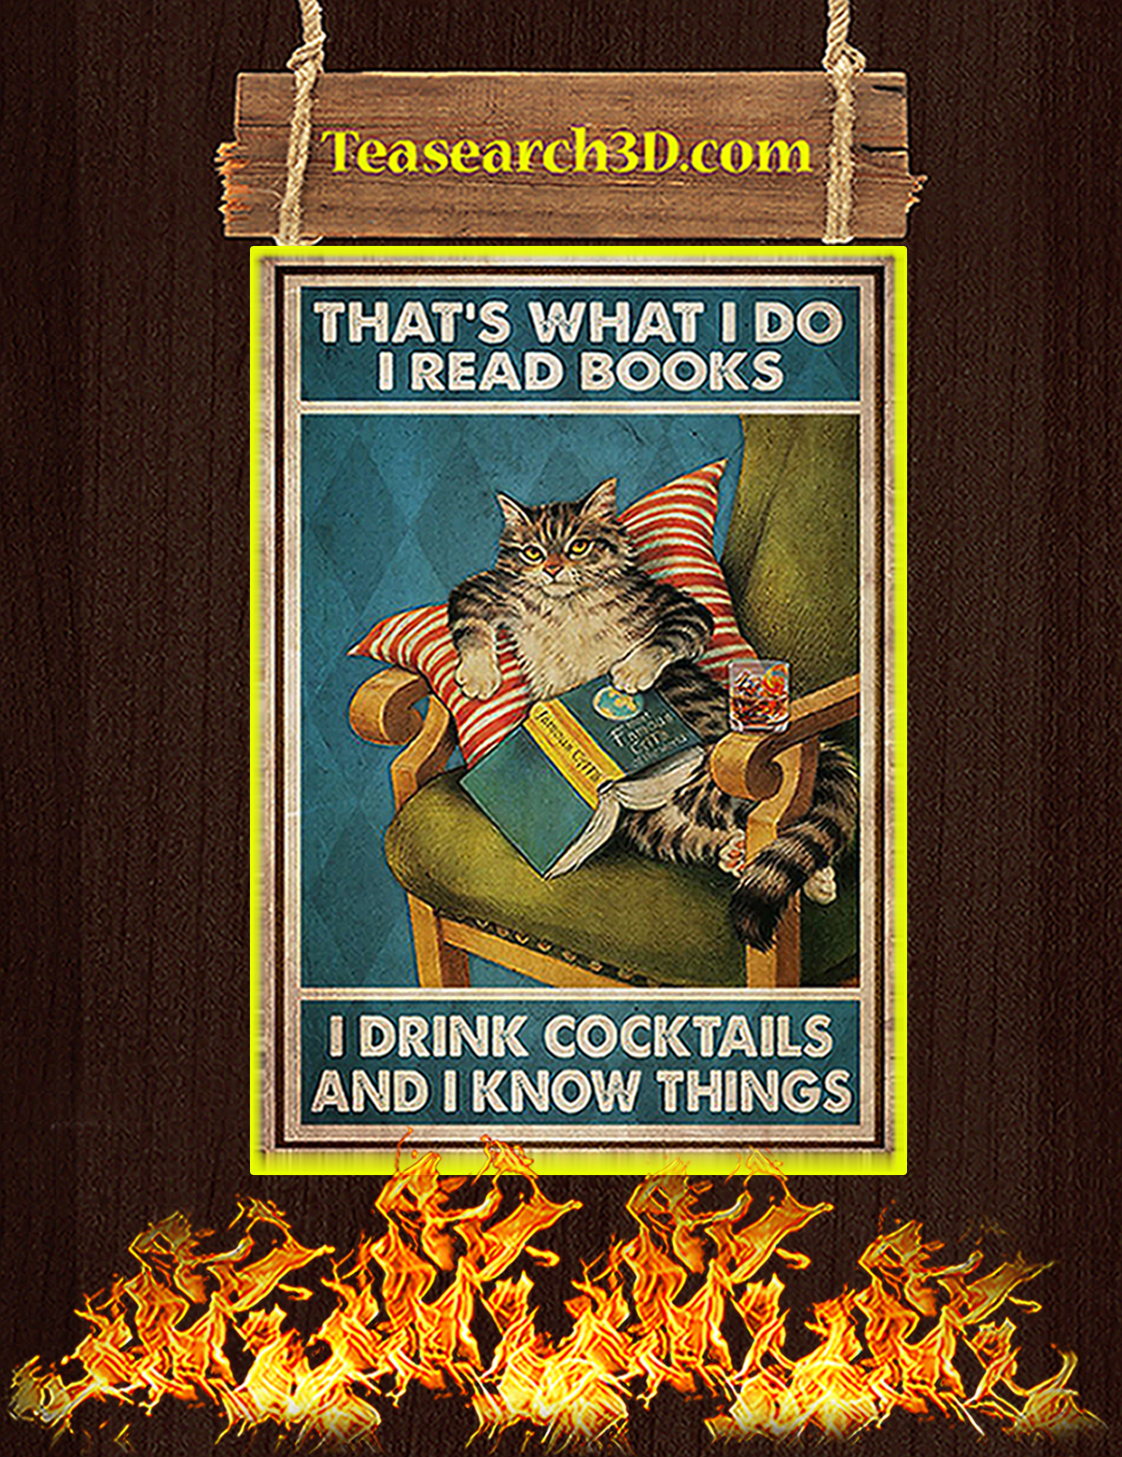 Cat That's what I do I read books I drink cocktails and I know things poster A3